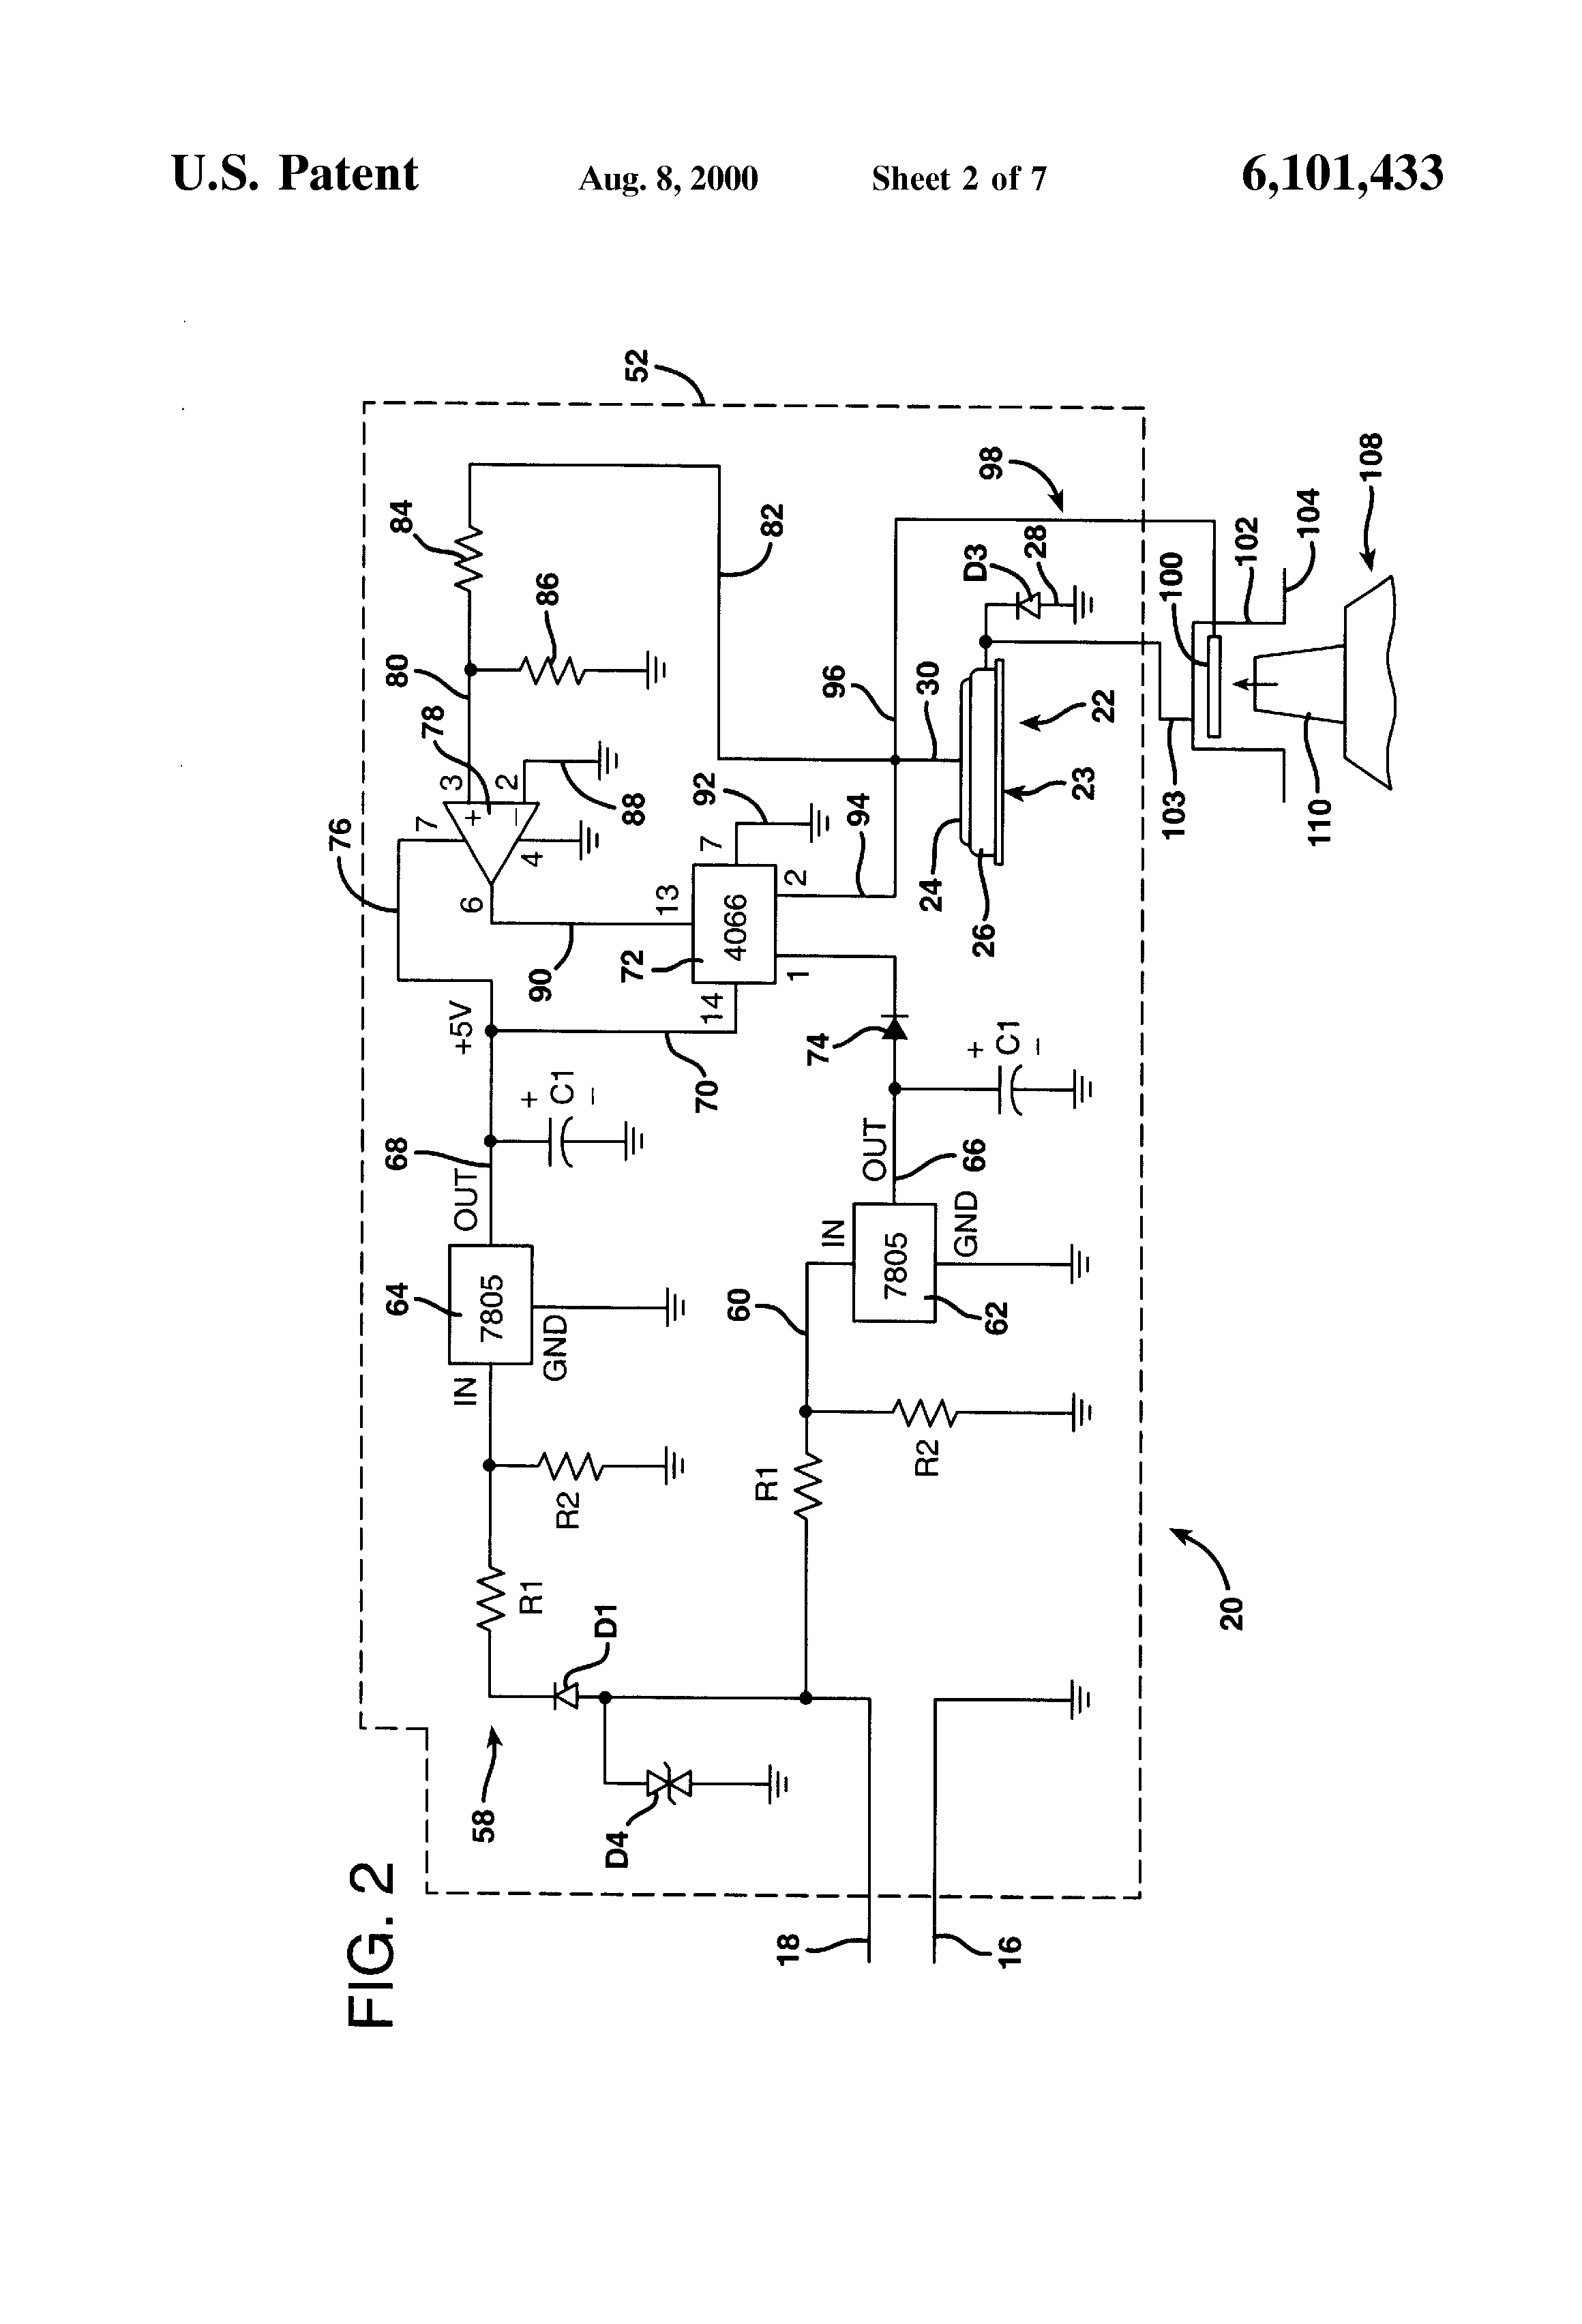 Yale Forklift Circuit Diagrams Diagram Wiring Diagram Images